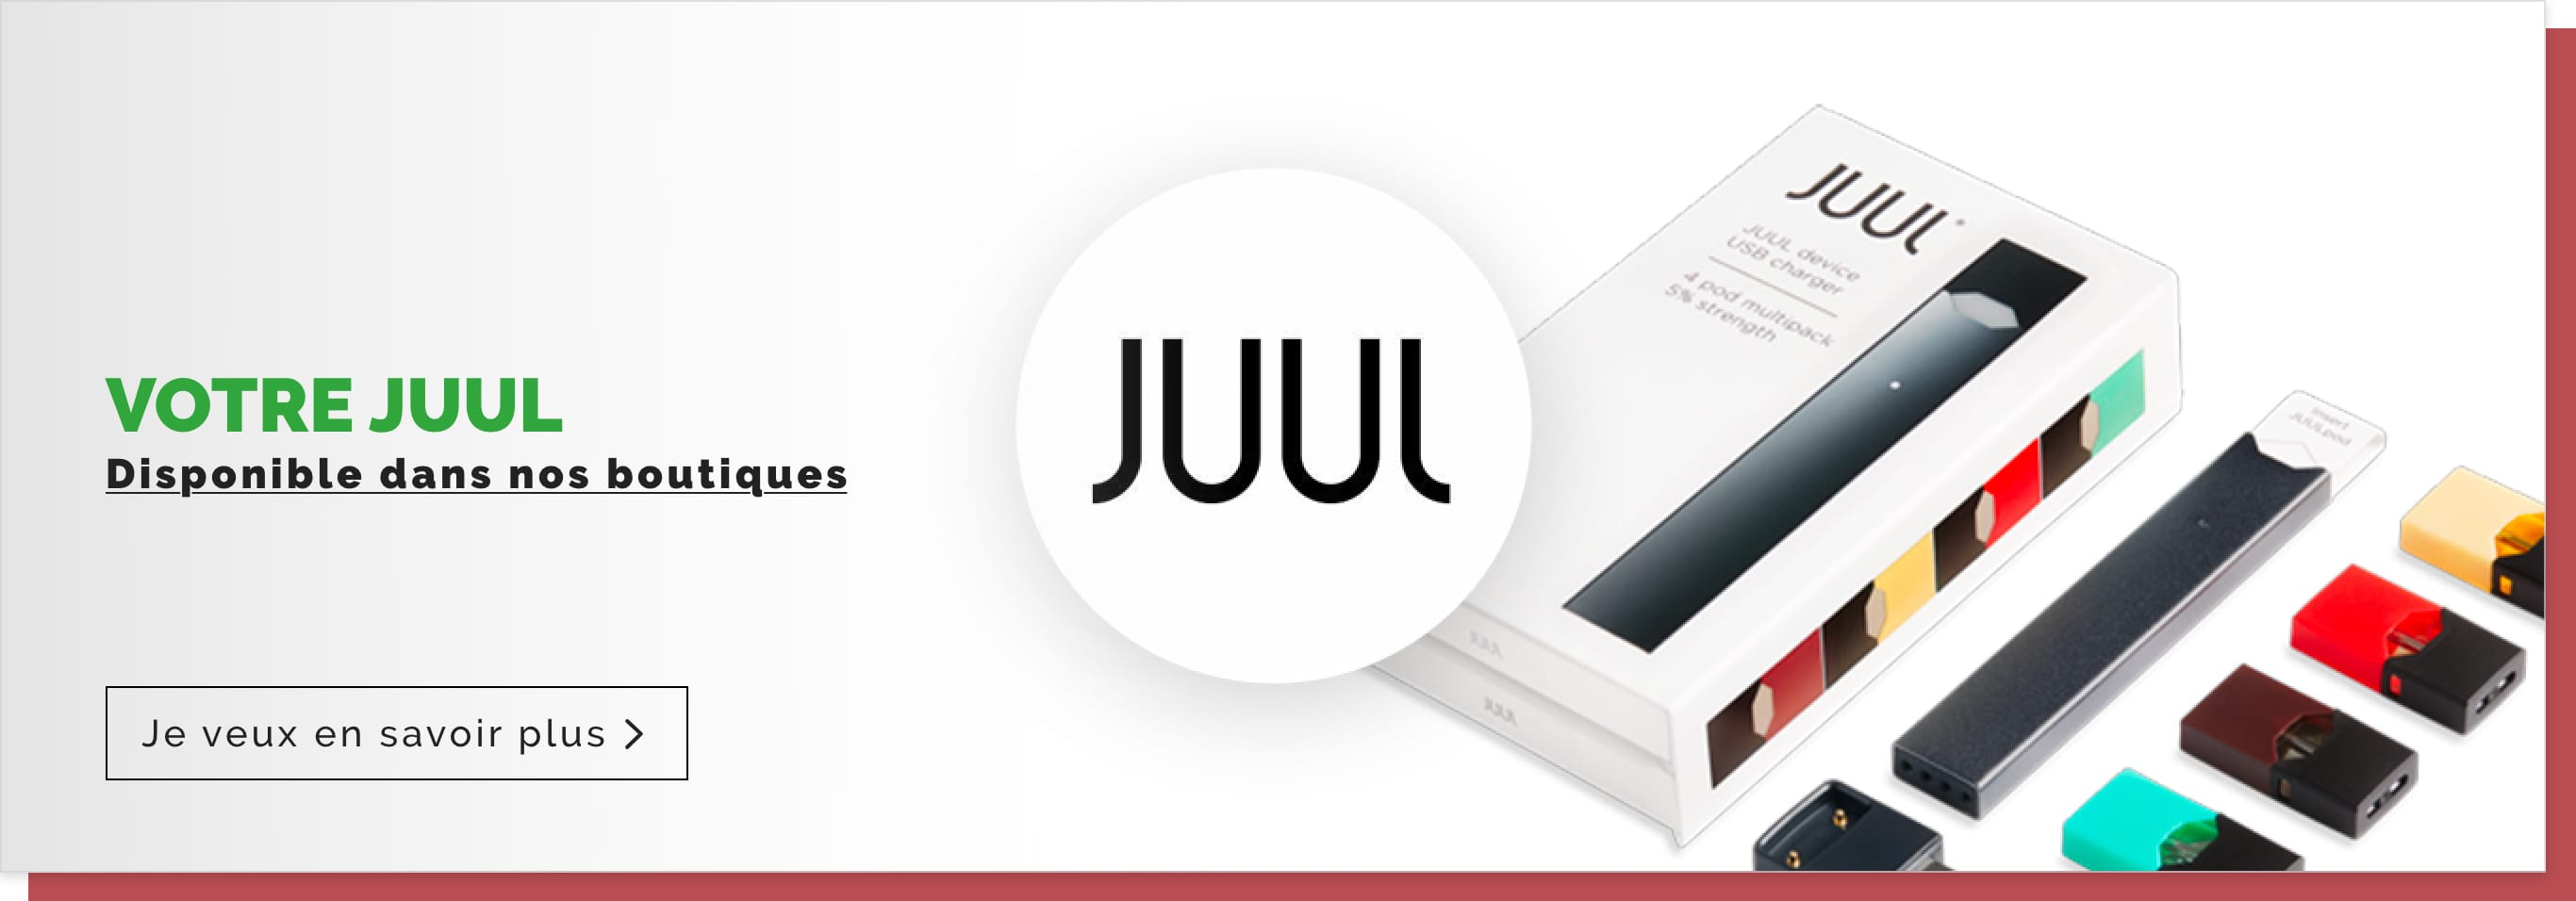 vap station juul en boutique